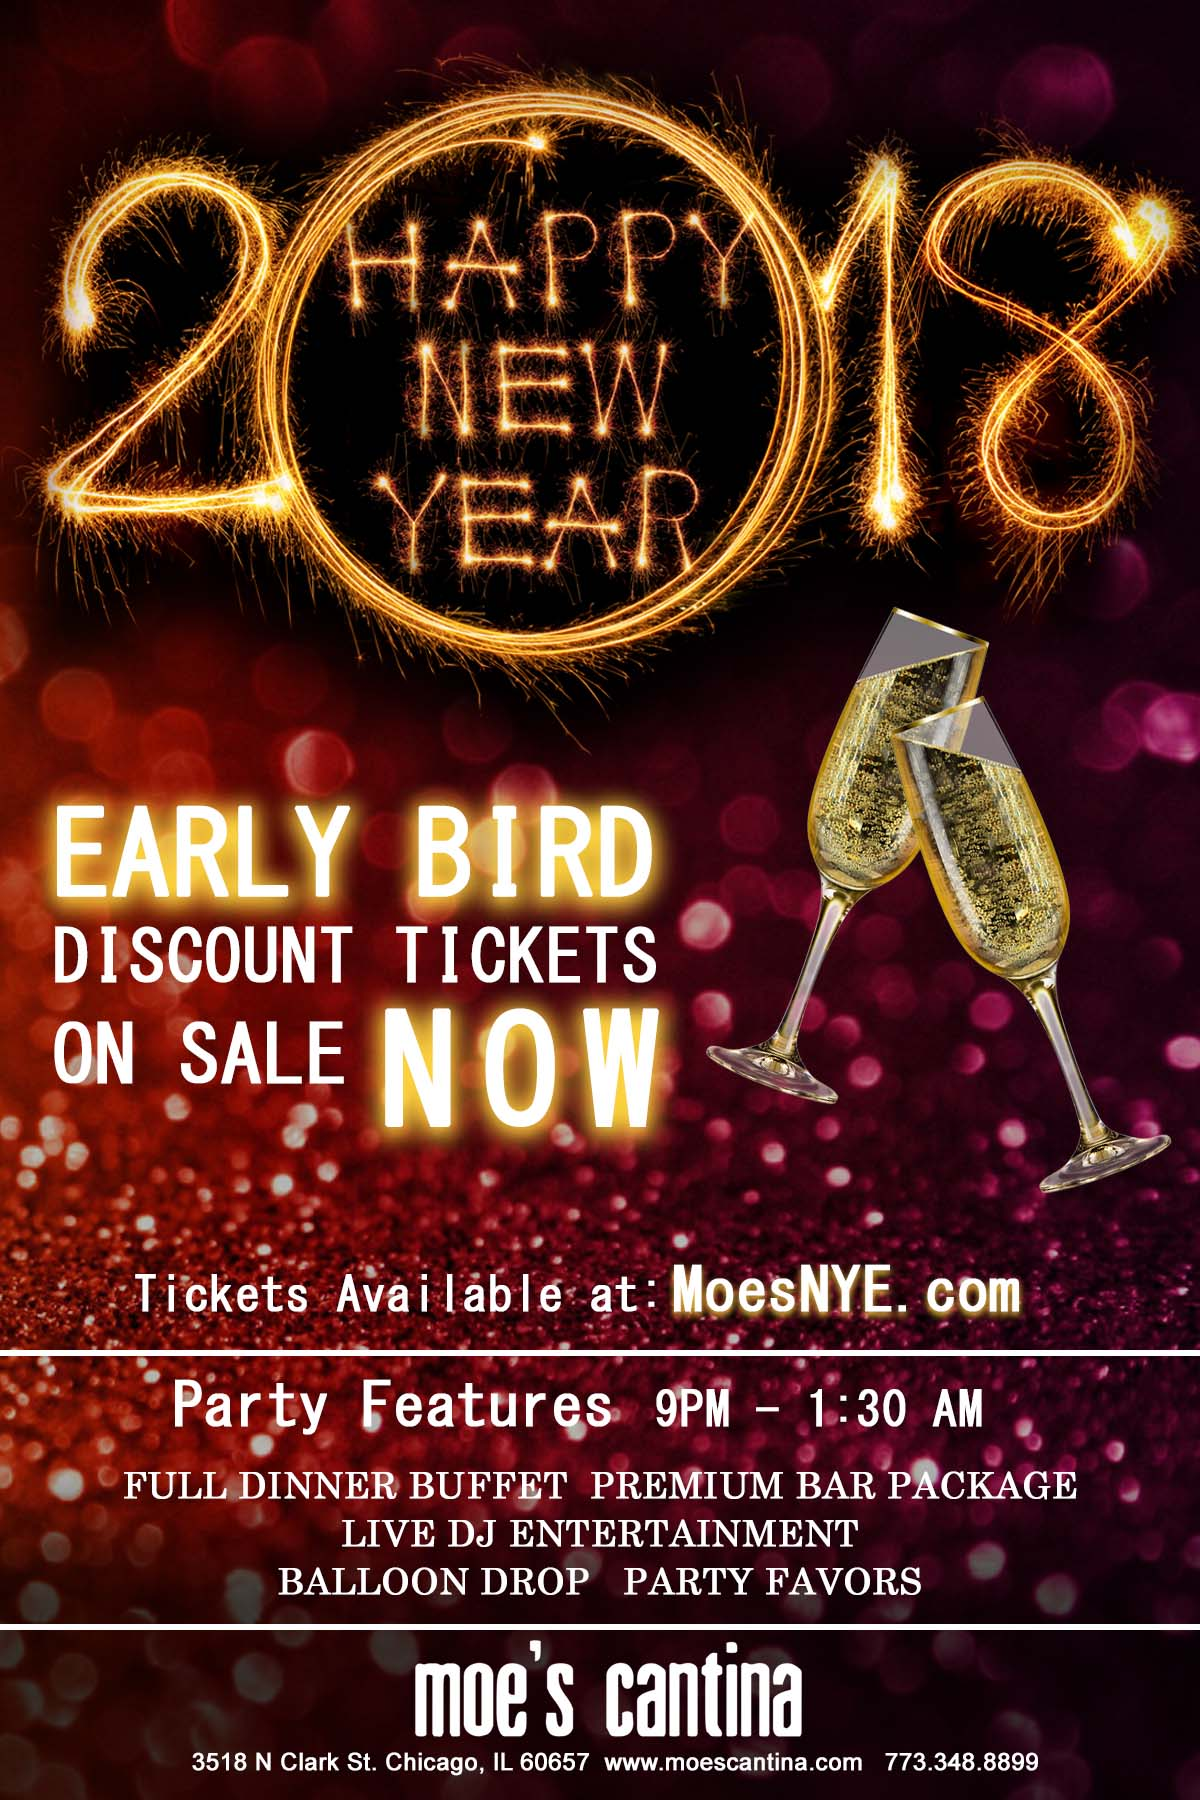 Moe's Cantina Wrigleyville New Year's Eve Party - Tickets Include a Full Dinner Buffet, Premium Bar Package from 9pm-1:30am, Live DJ Entertainment, Balloon Drop and More!